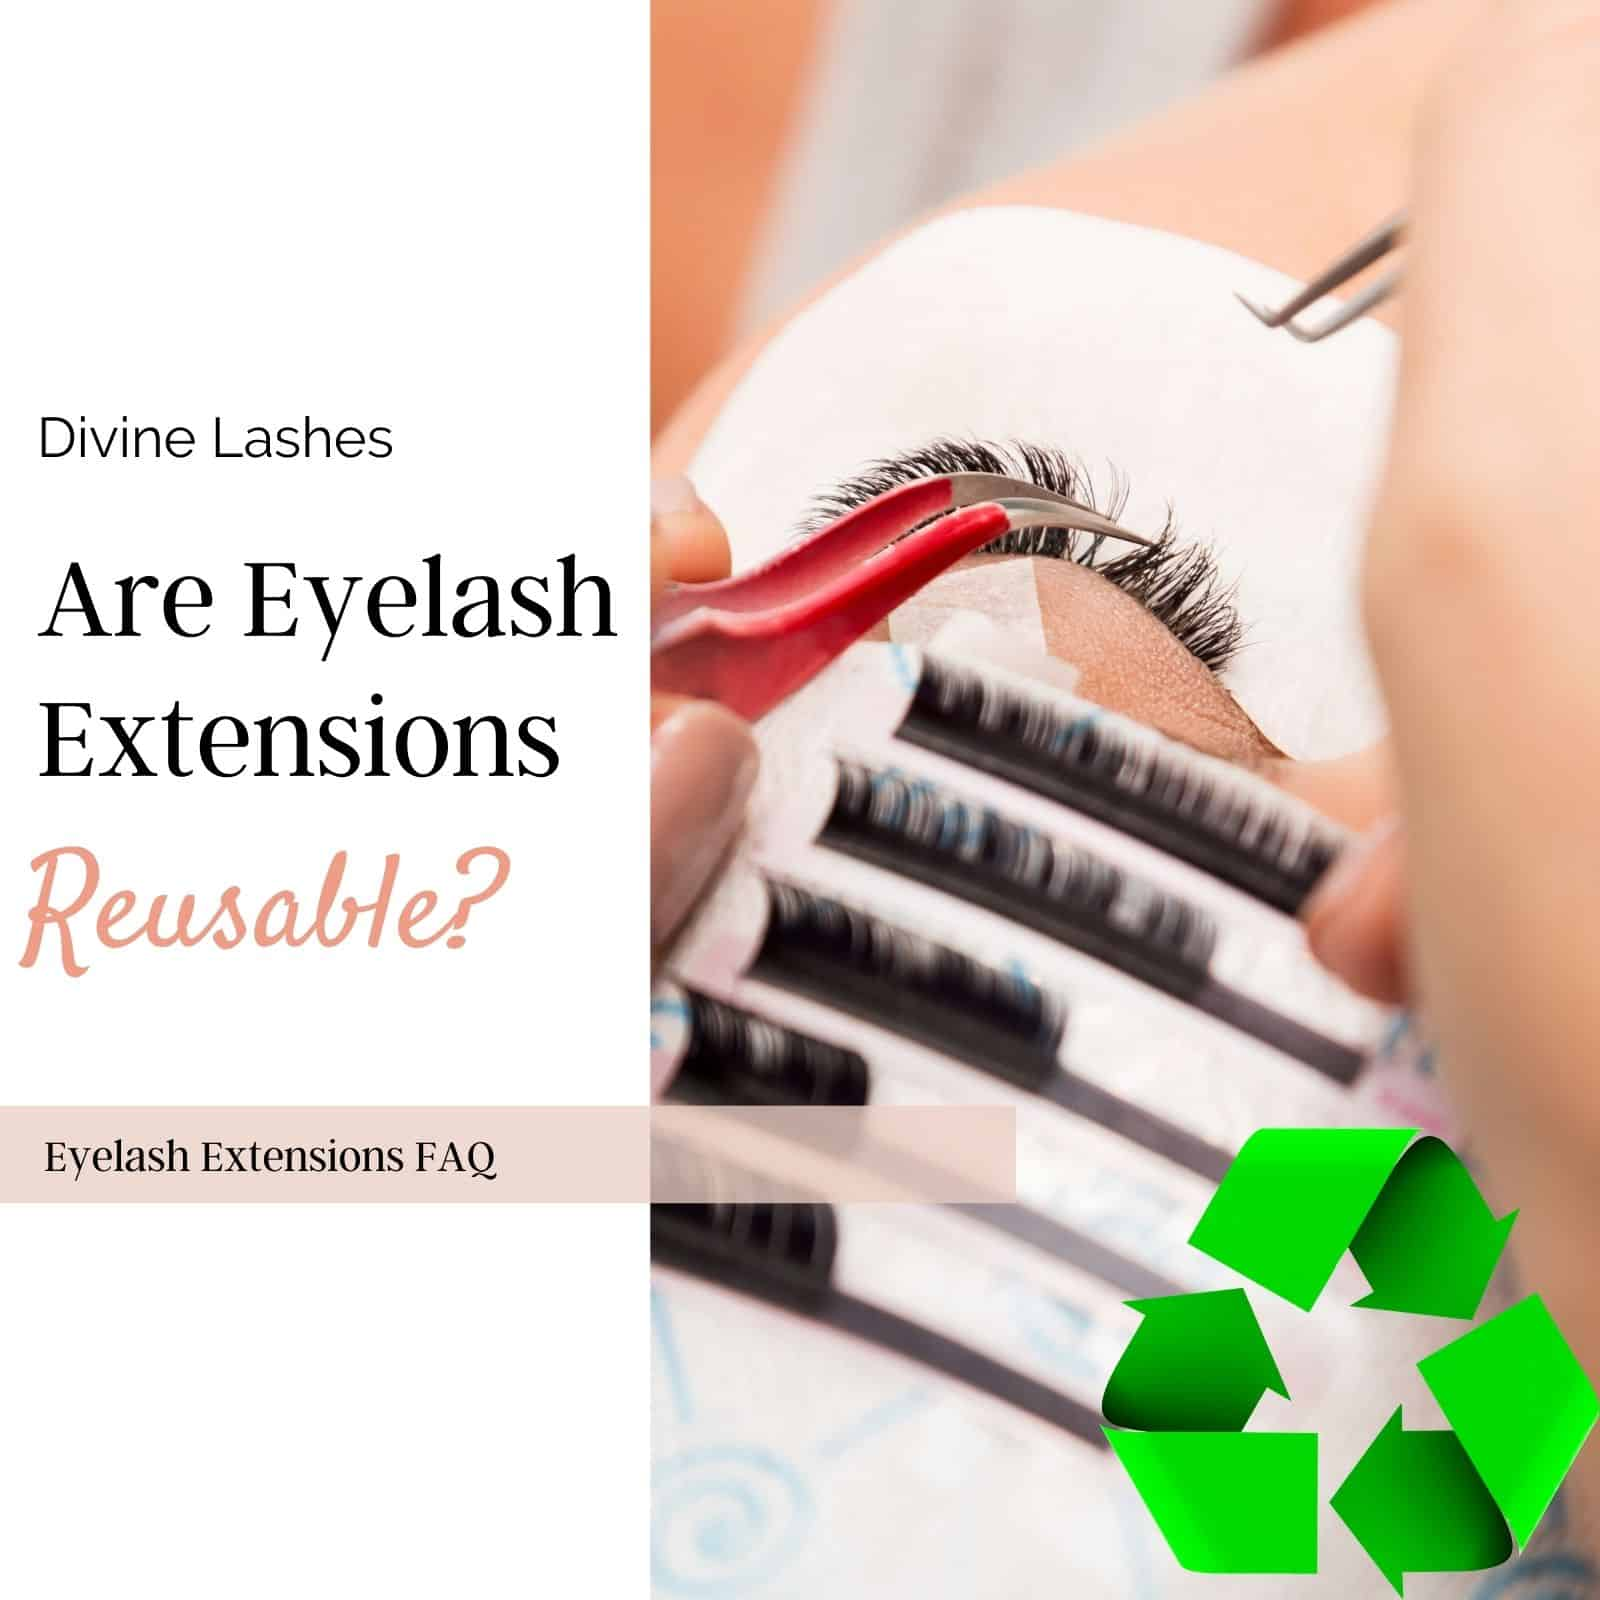 Are eyelash extensions reusable? Eyelash extensions being applied with an eyelash tray and a recycle logo